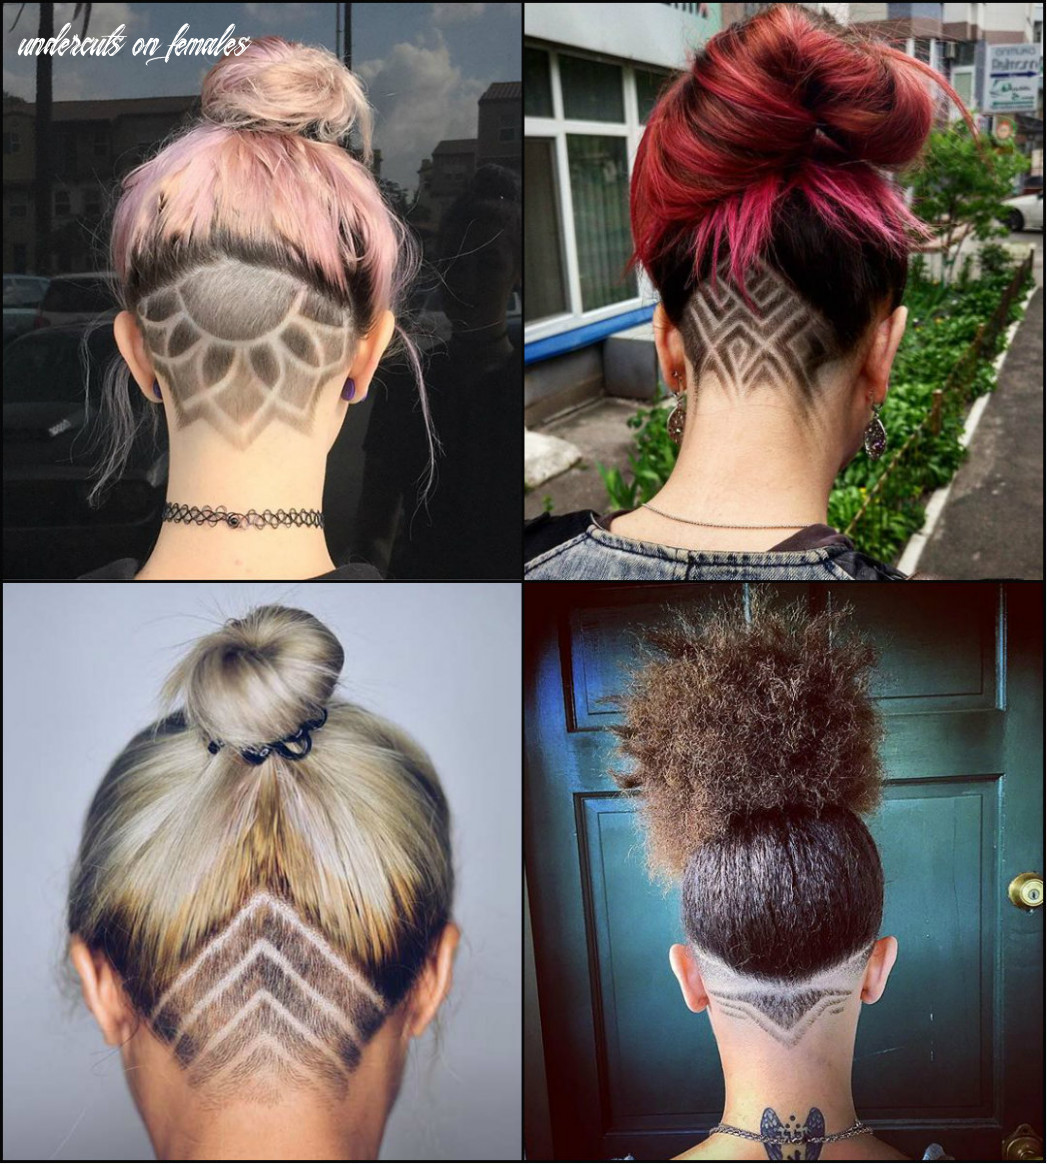 Long hairstyles: cool undercut female hairstyles to show off undercuts on females